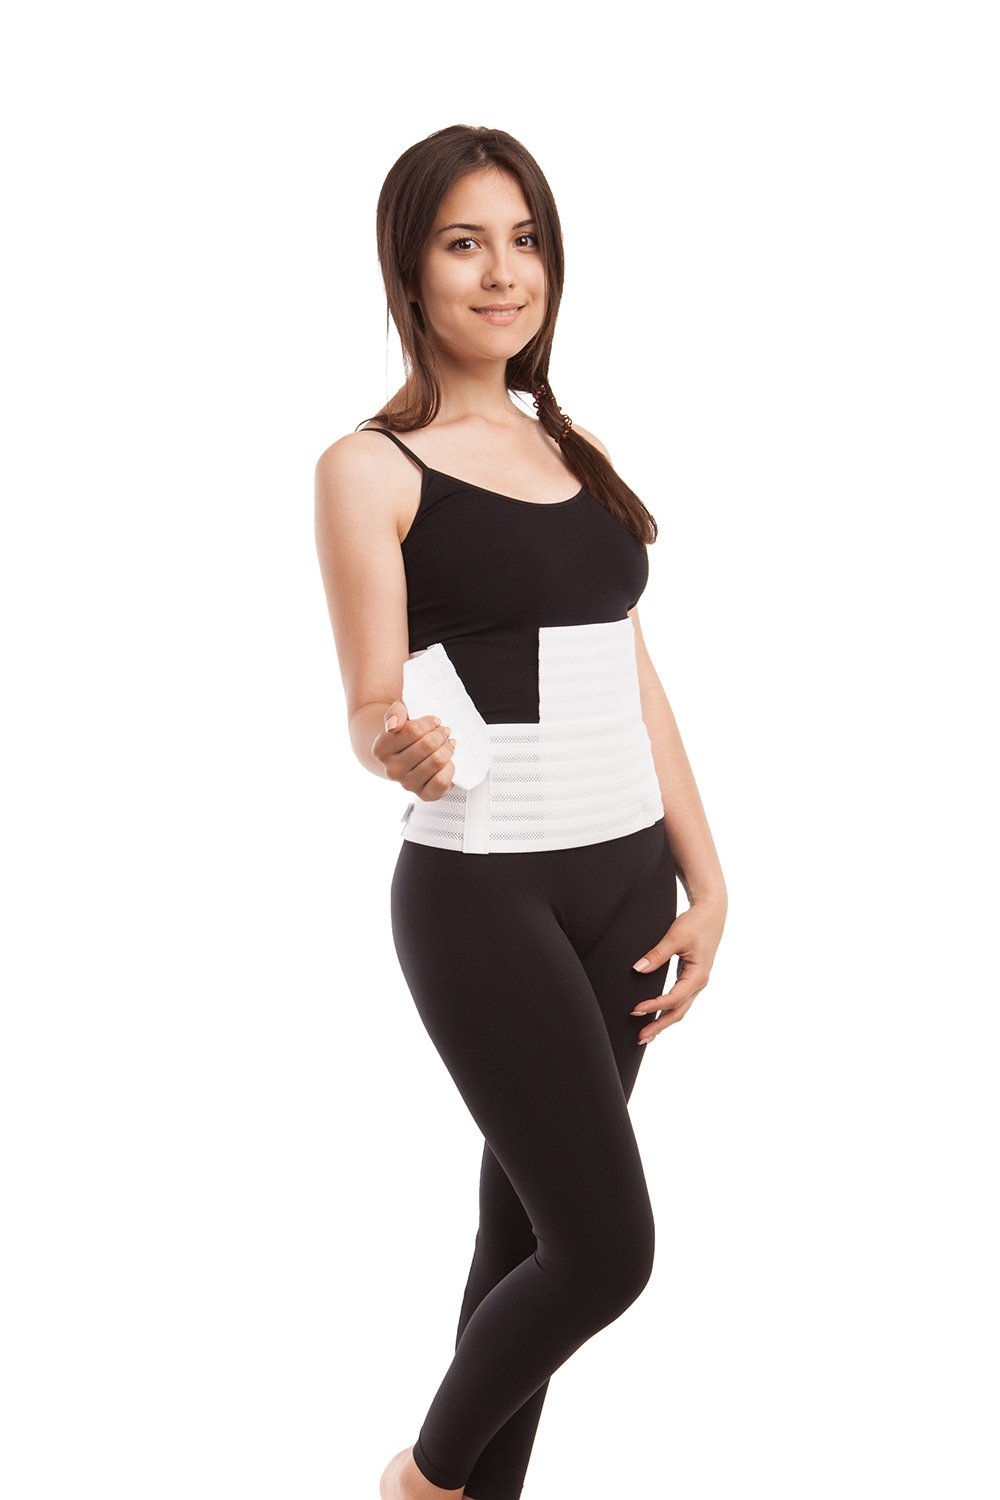 Abdominal Binder - Breathable Medium Support 9 inches - Gabrialla